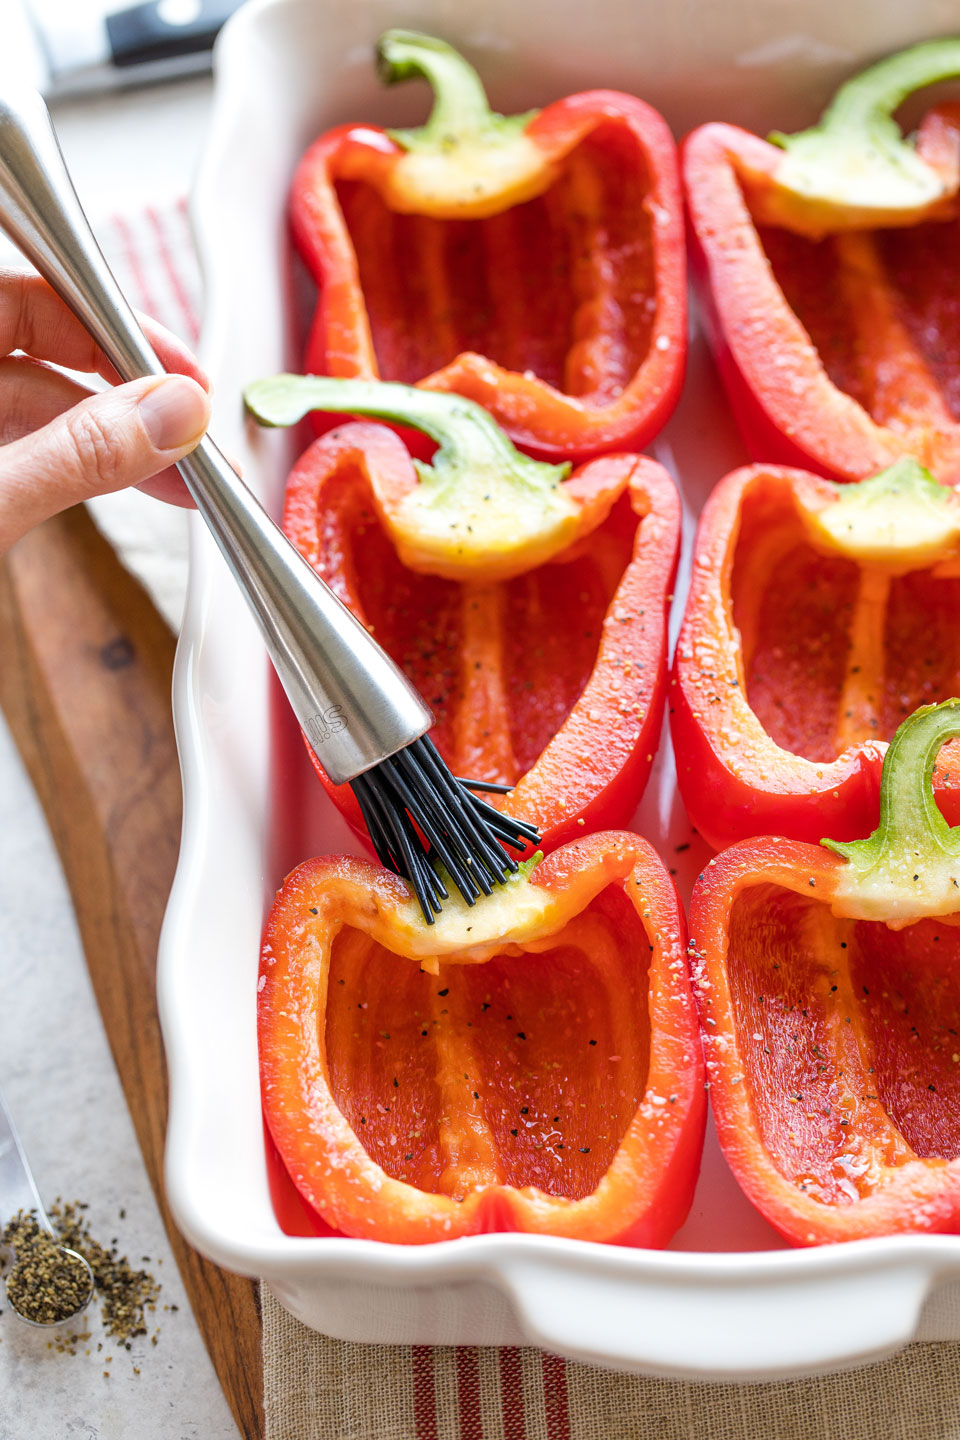 Hand brushing oil onto un-stuffed peppers in baking dish.